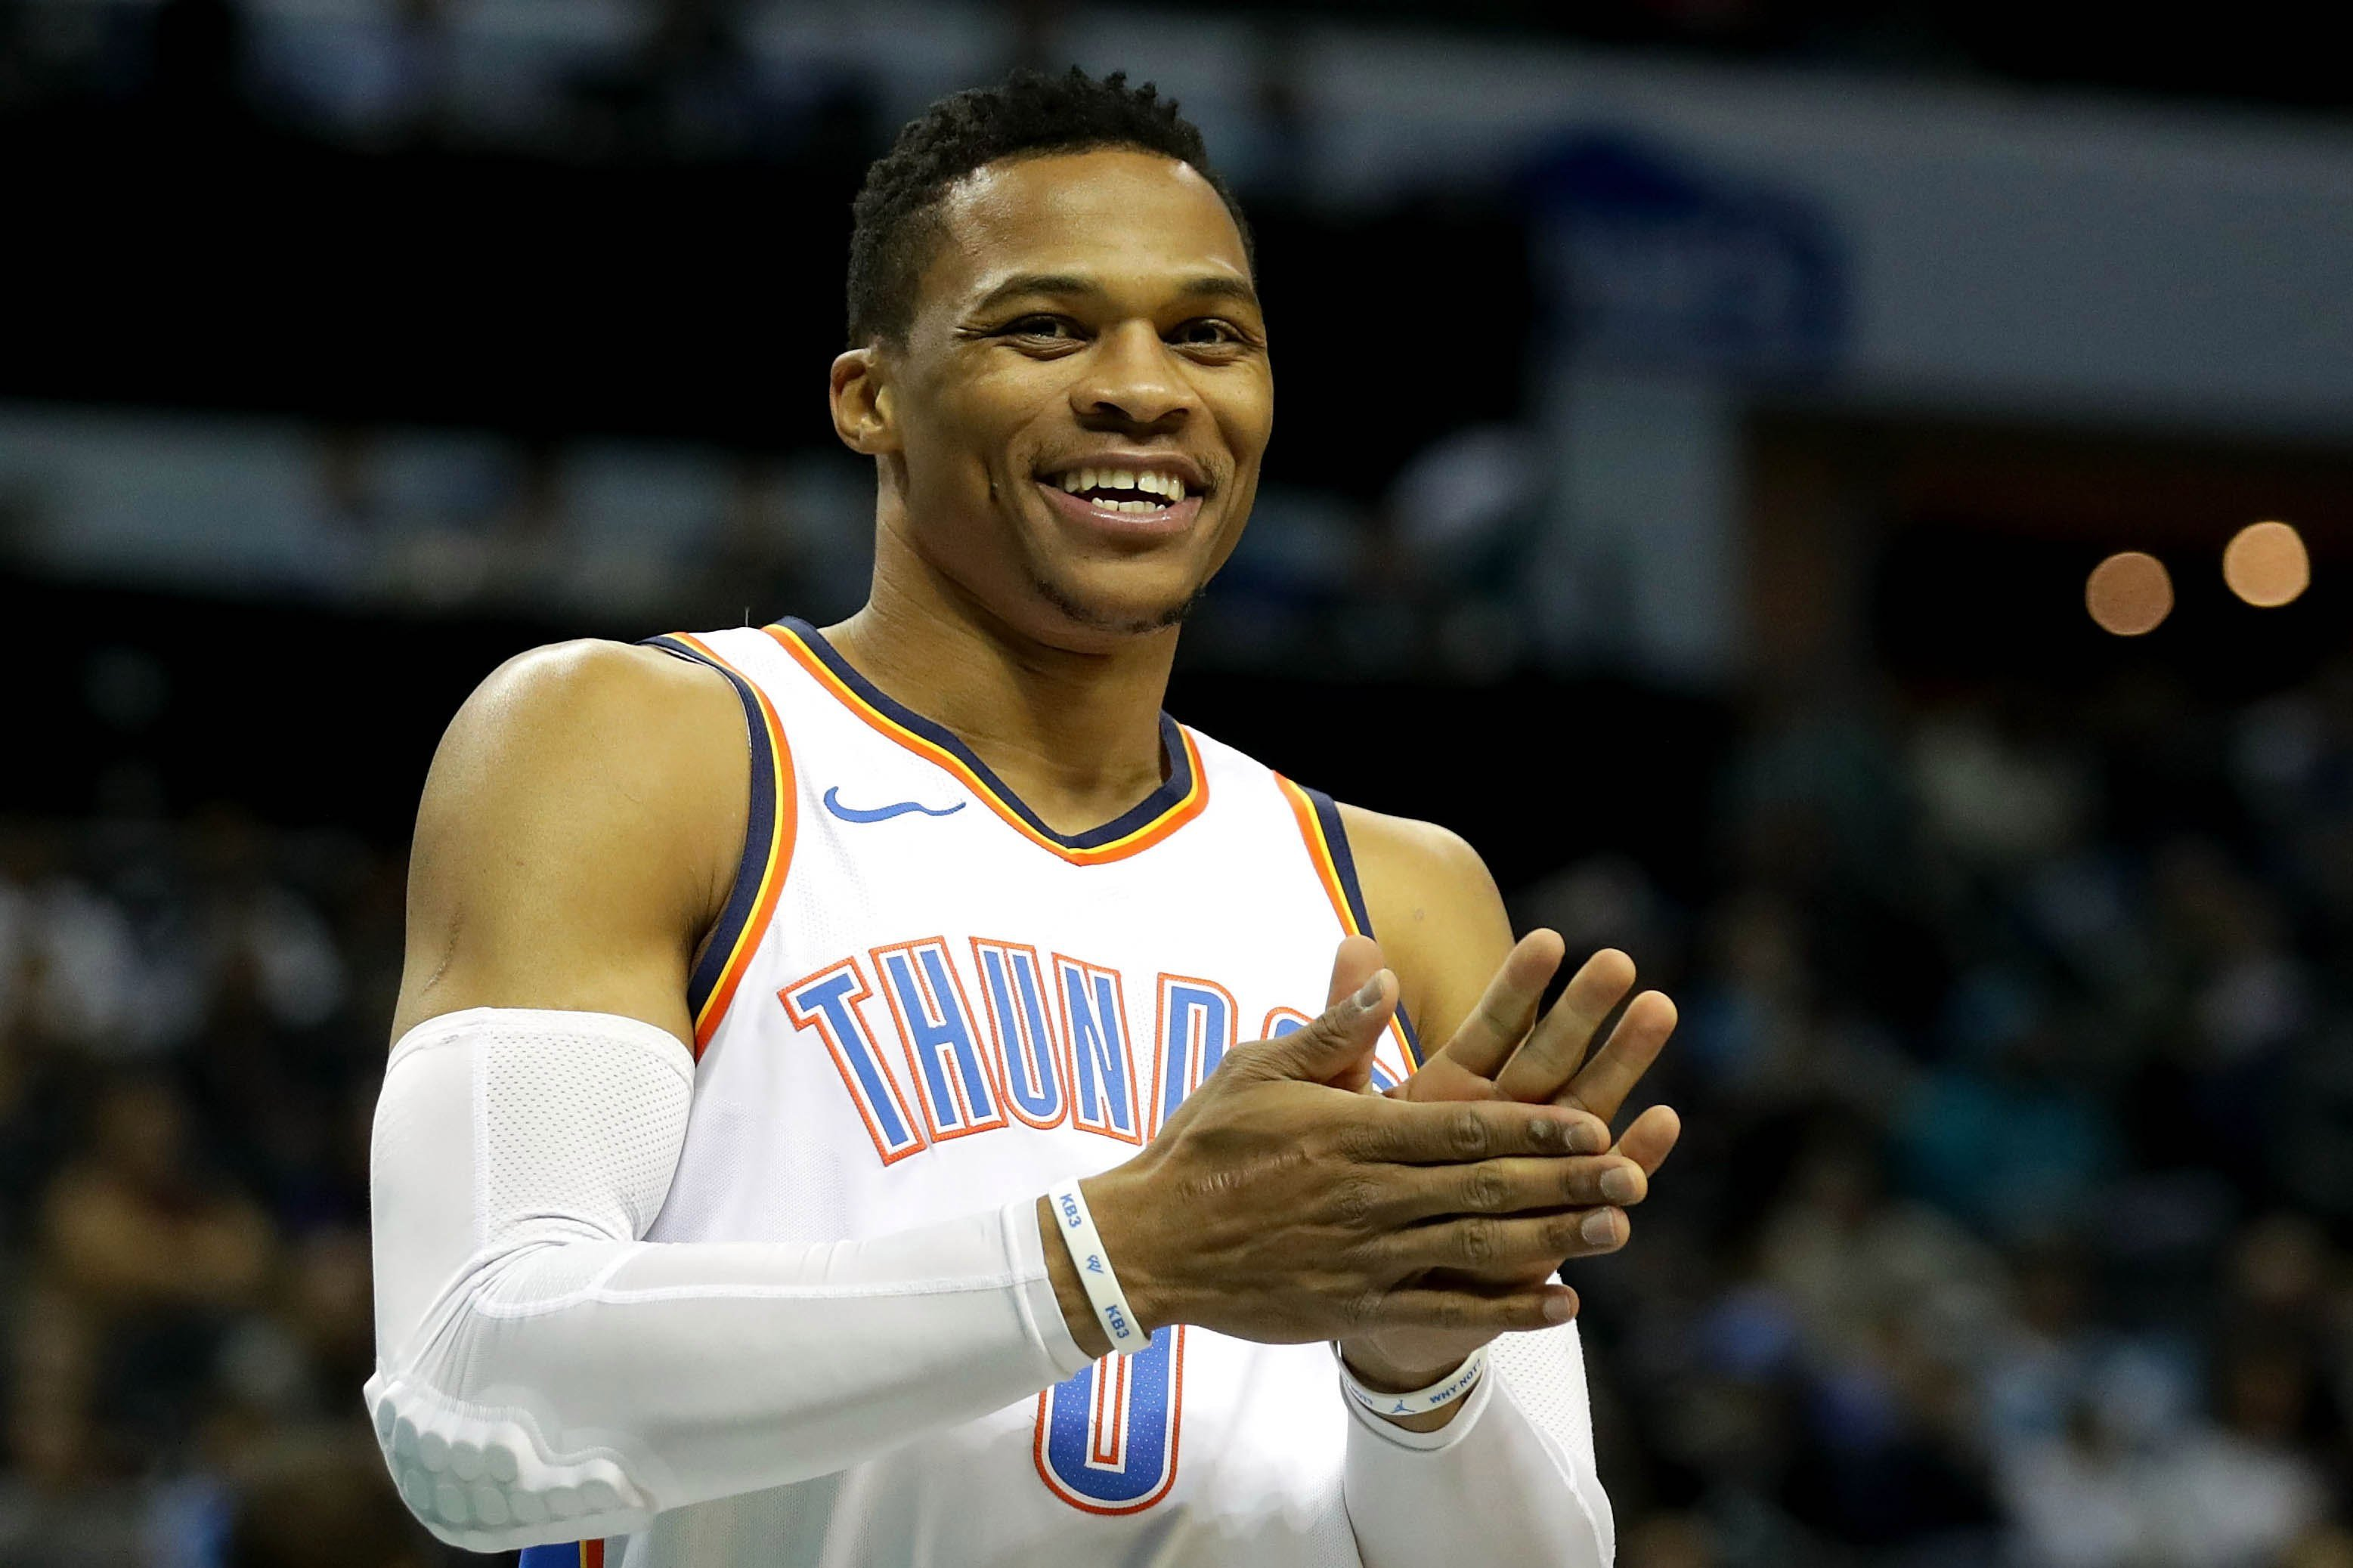 One Russell Westbrook comment pissed off everyone — except his target